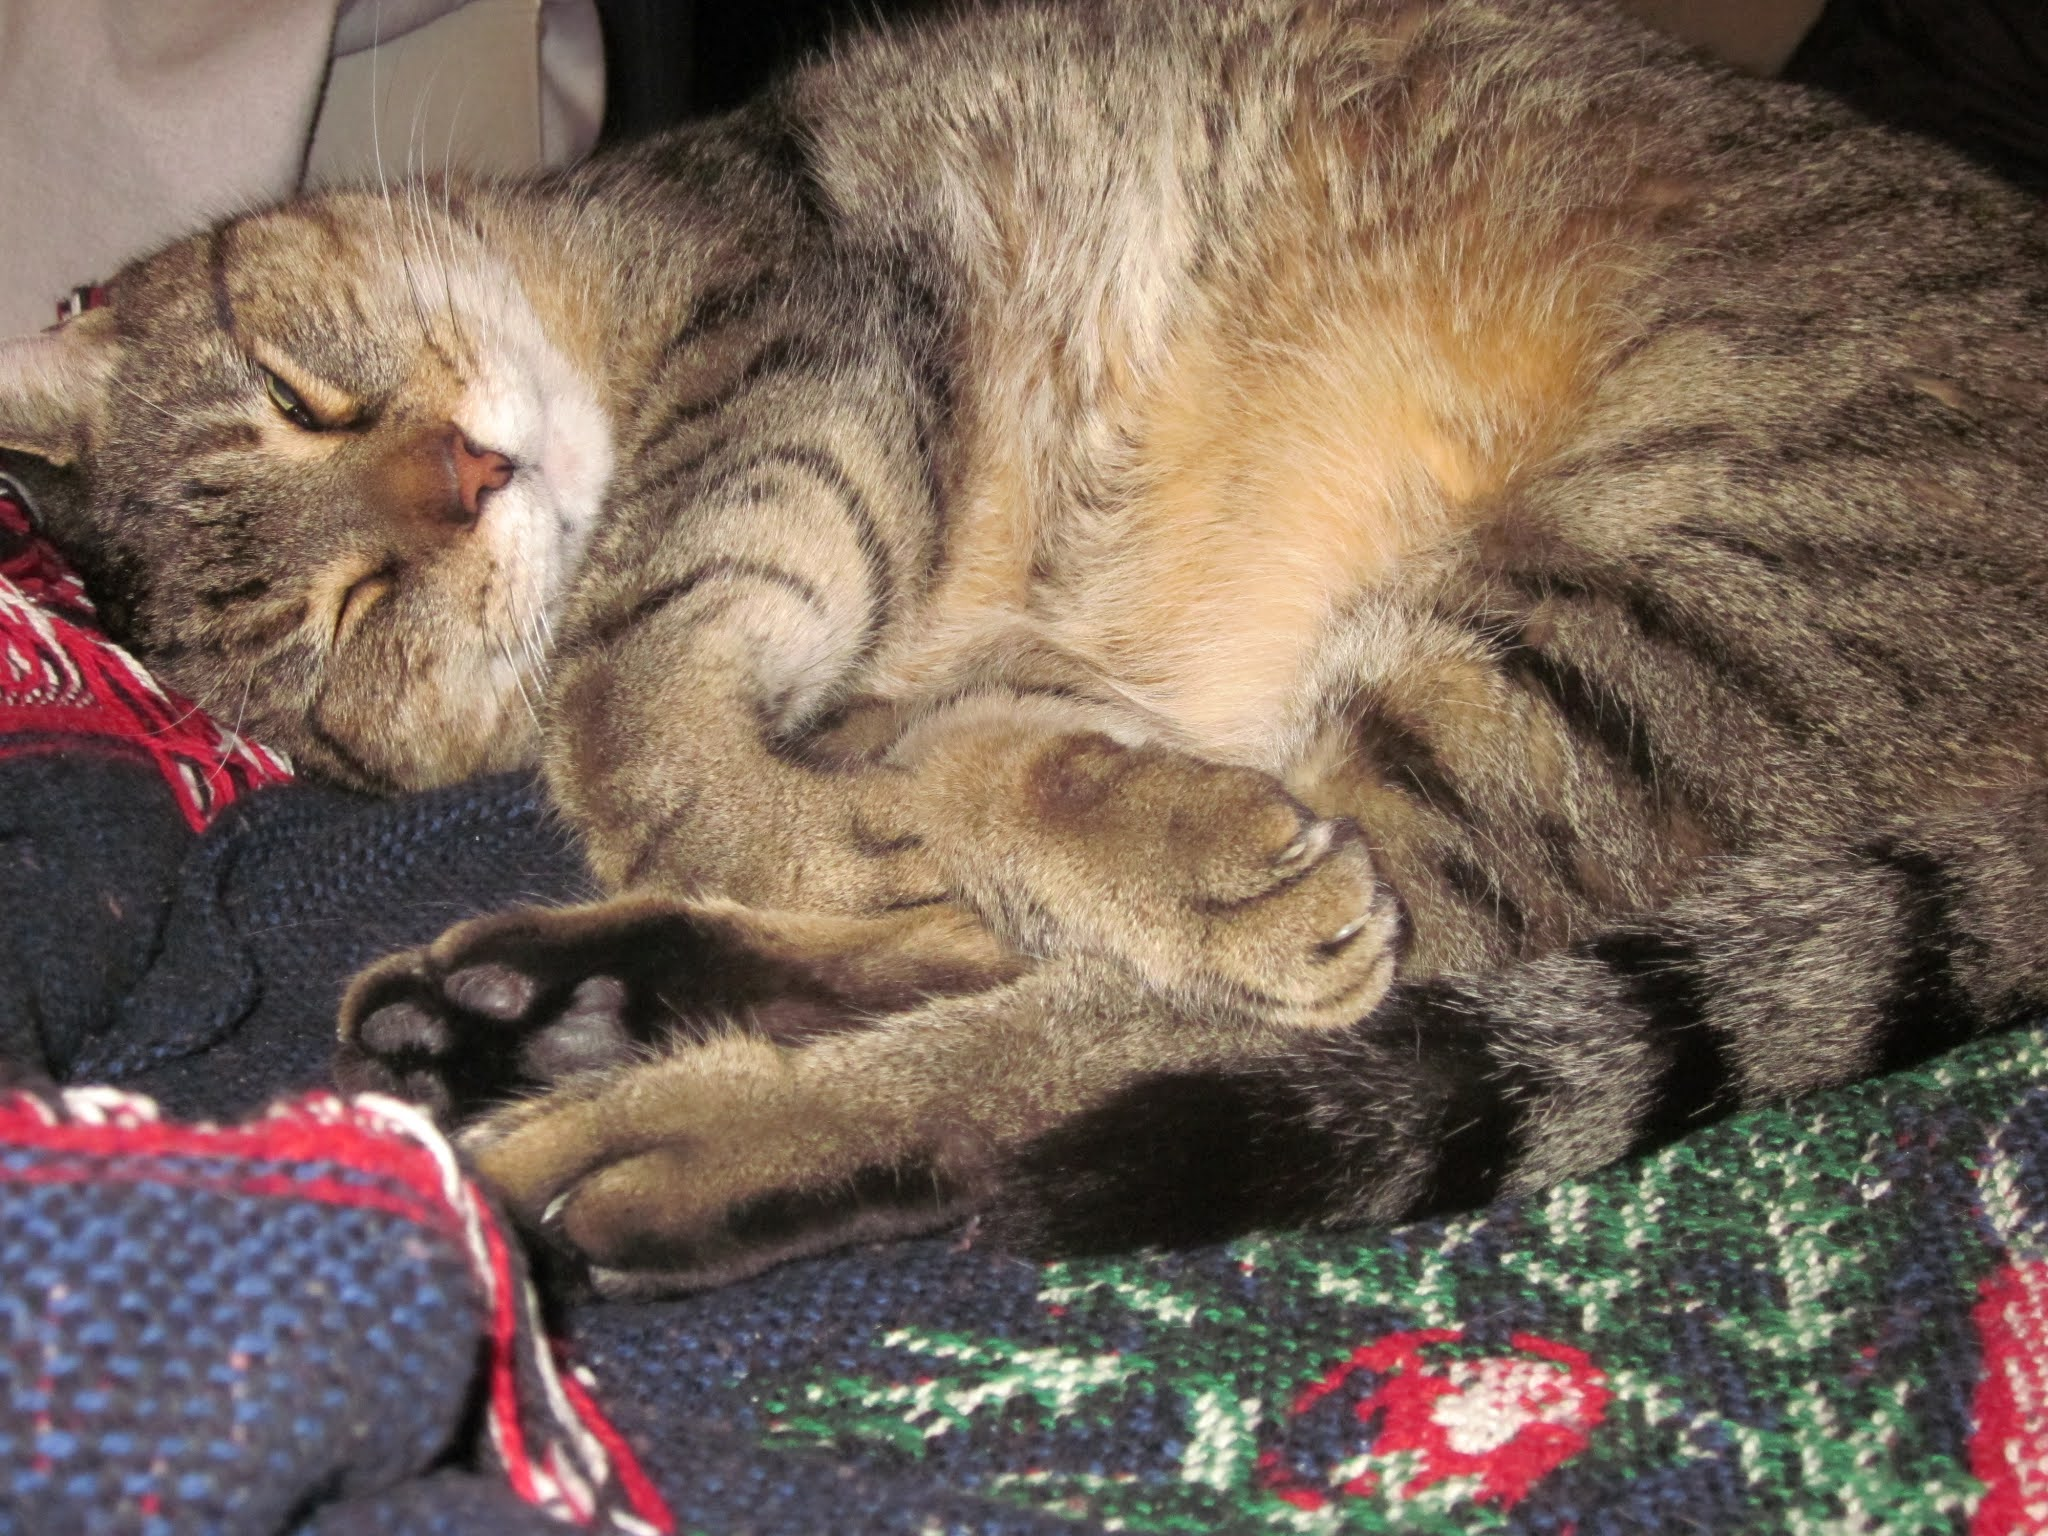 A cat with eyes closed curled up with his paws all jumbled and his stomach showing on a knit blanket